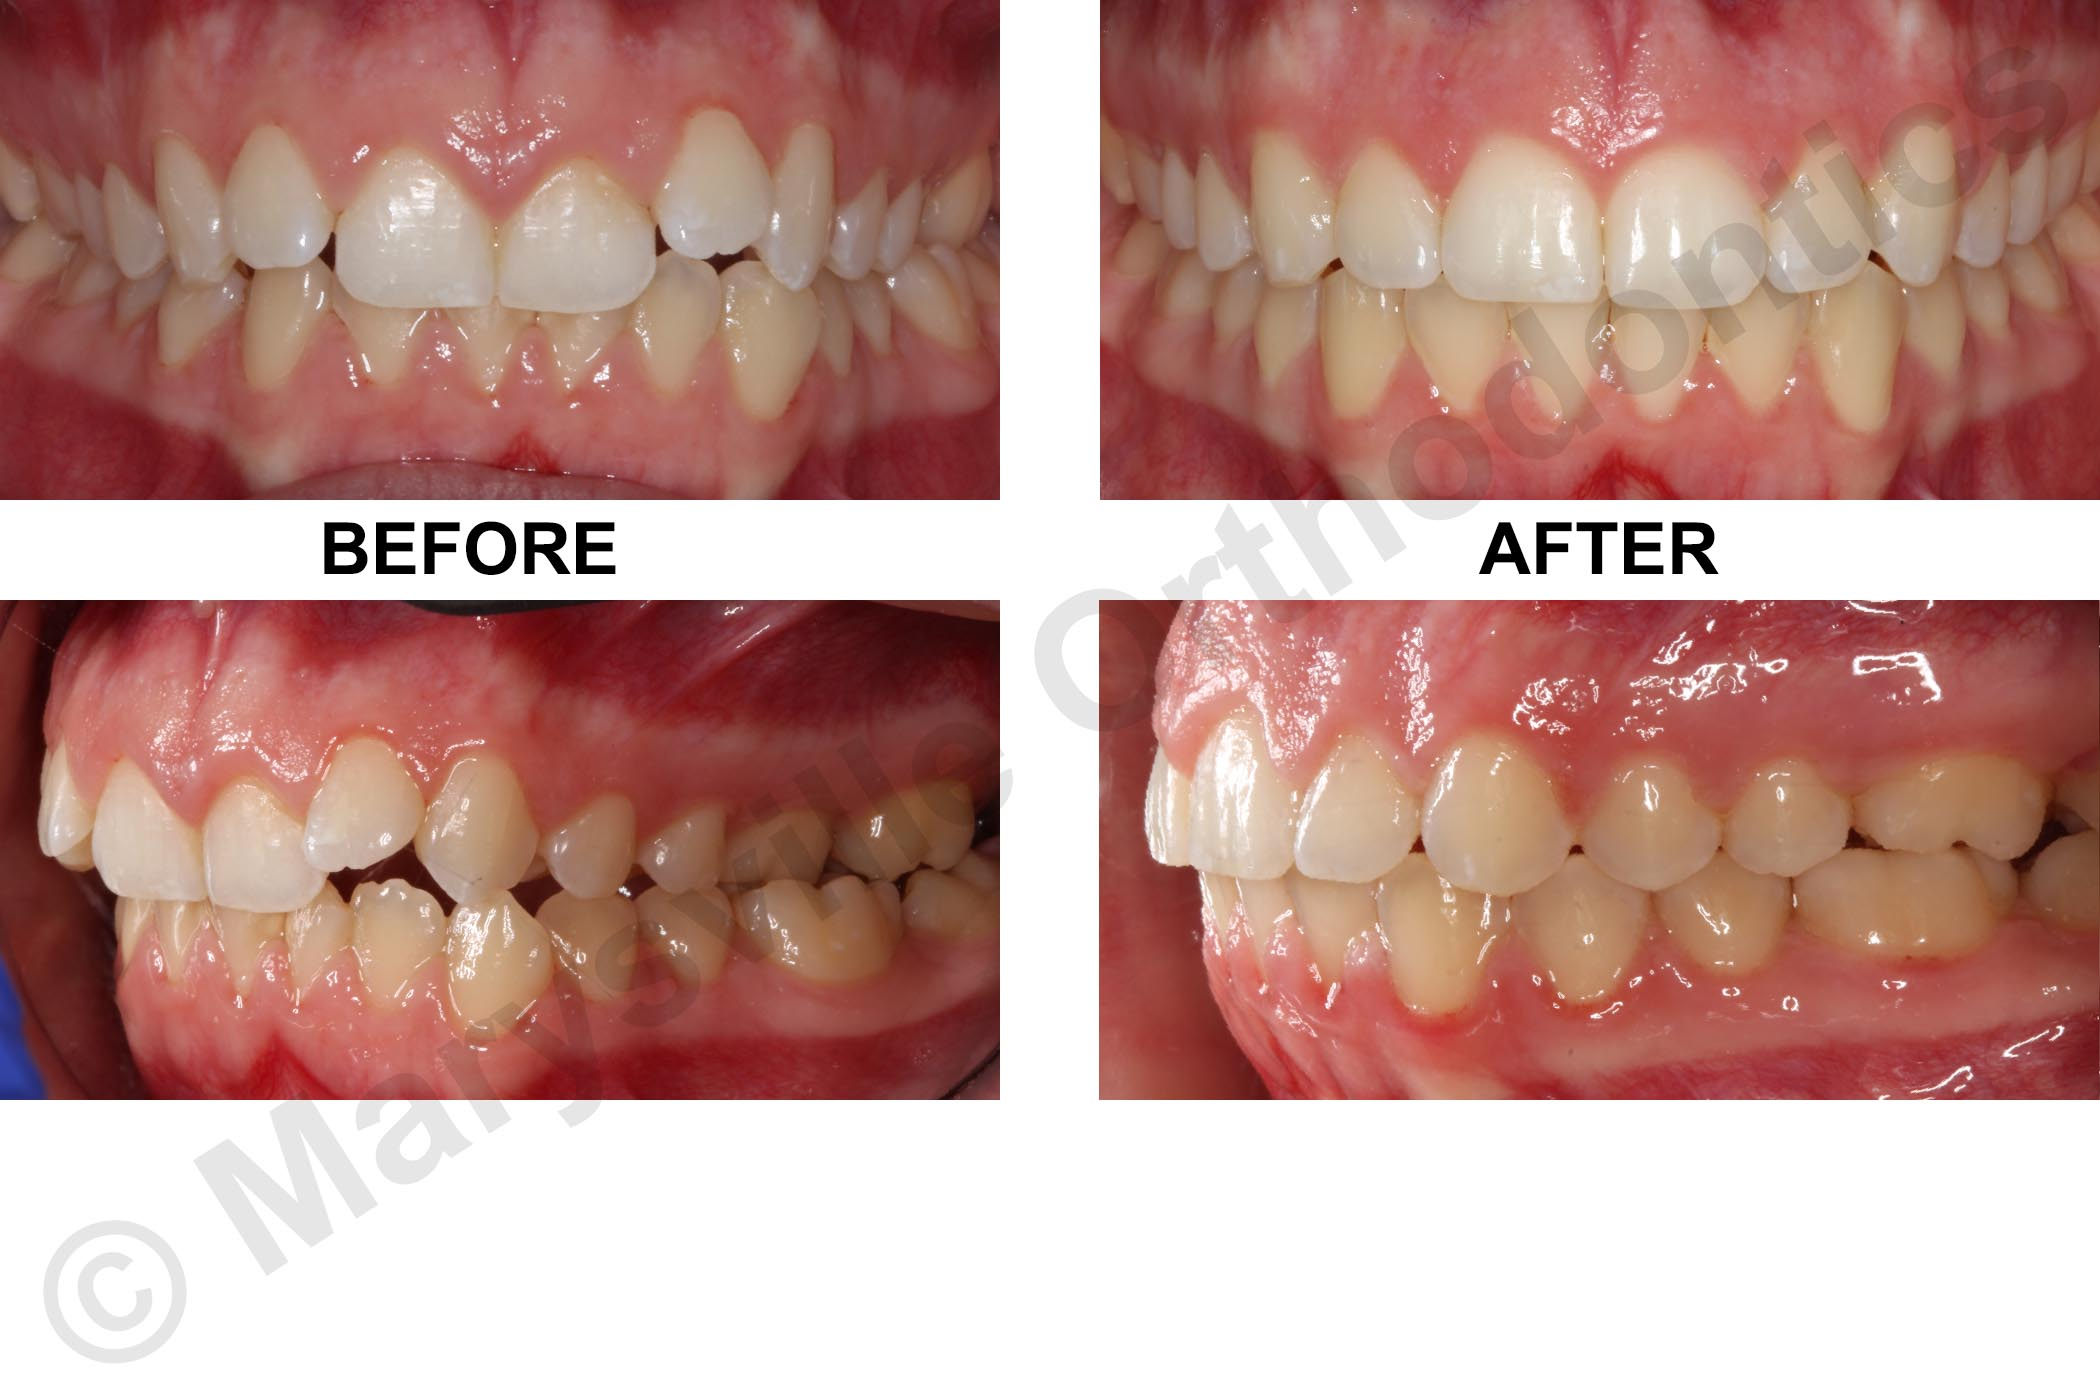 ASYMMETRY, CROWDING, POSTERIOR CROSSBITE AND GUMMY SMILE